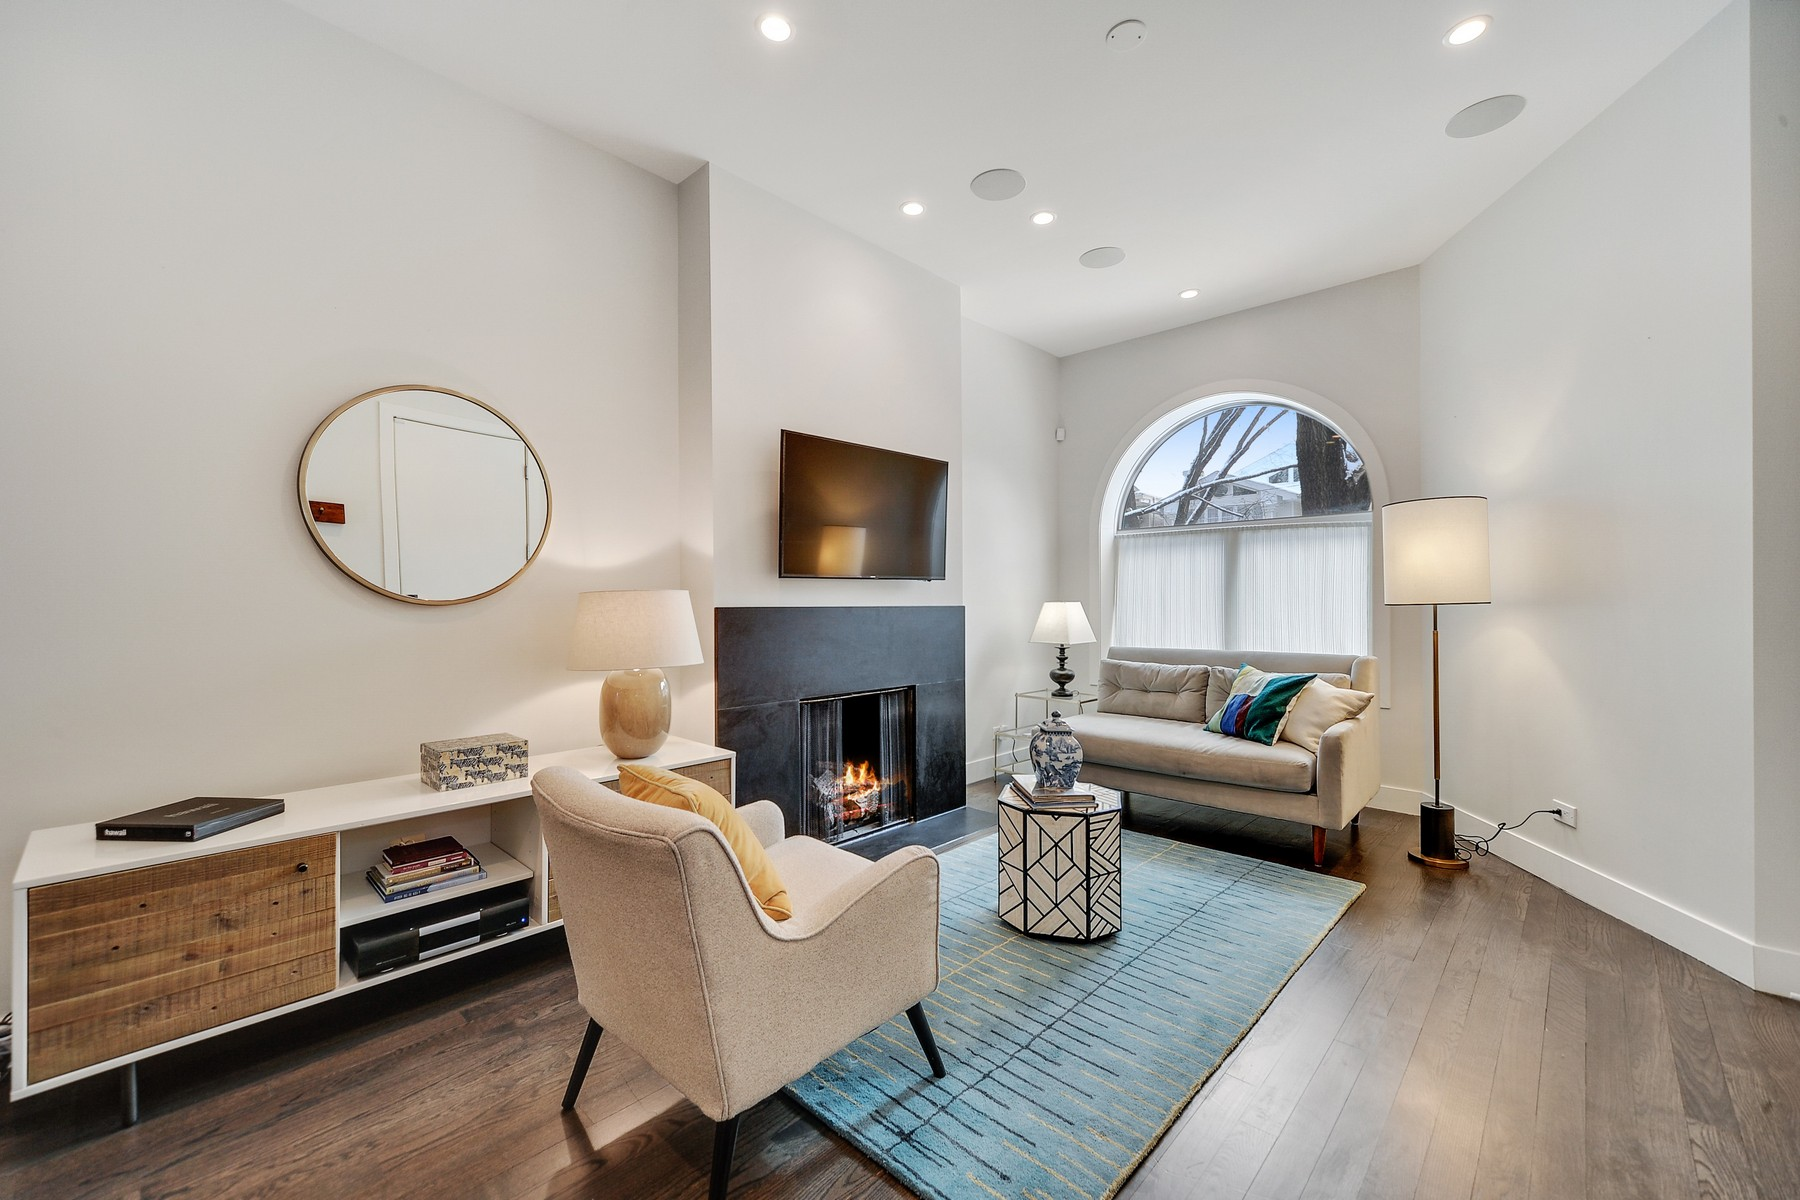 Кондоминиум для того Продажа на Modern Renovation of Classic Home 1134 W Wrightwood Avenue Unit 1, Lincoln Park, Chicago, Иллинойс, 60614 Соединенные Штаты